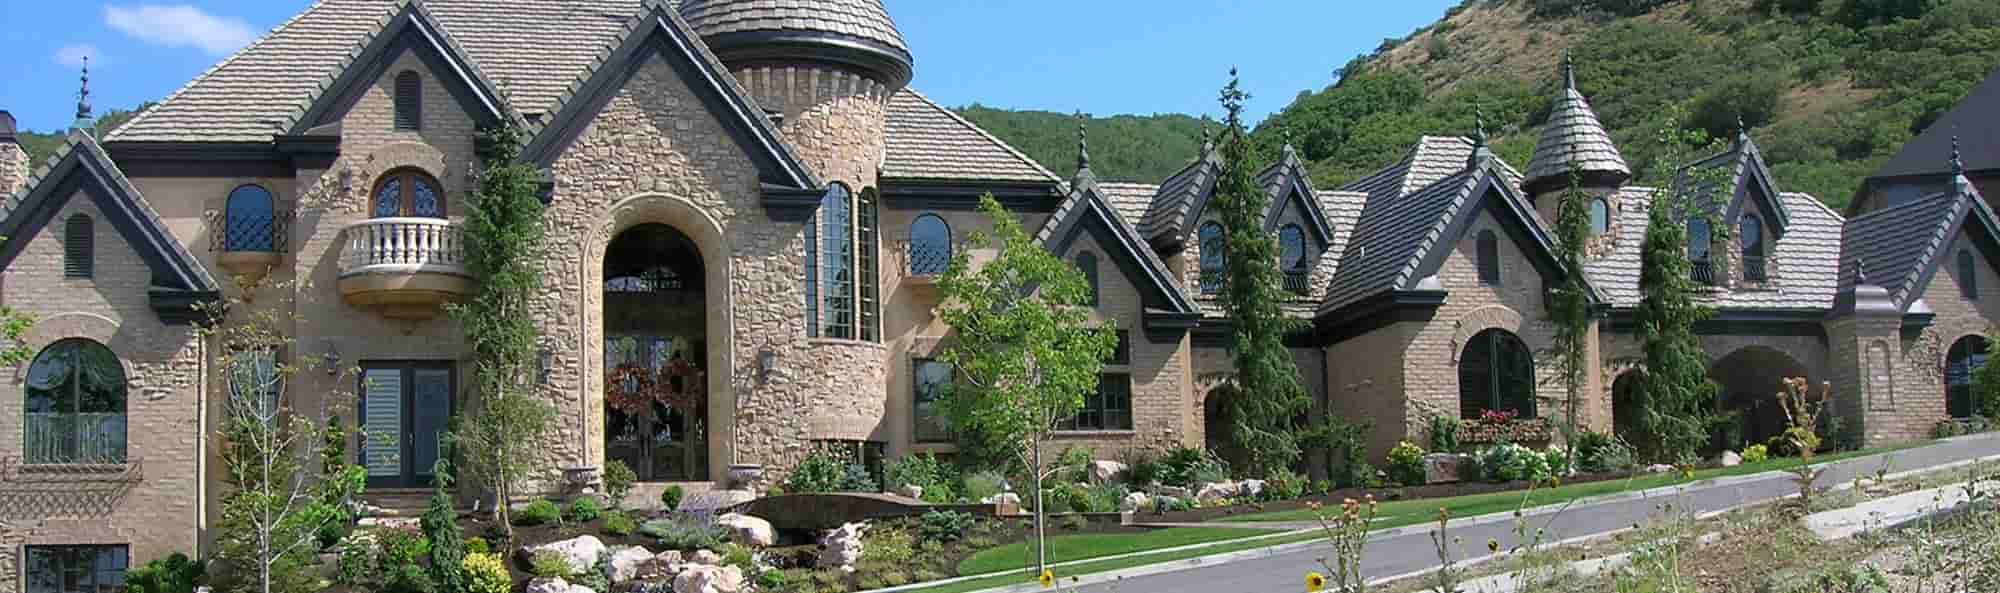 Homes in Salt Lake City